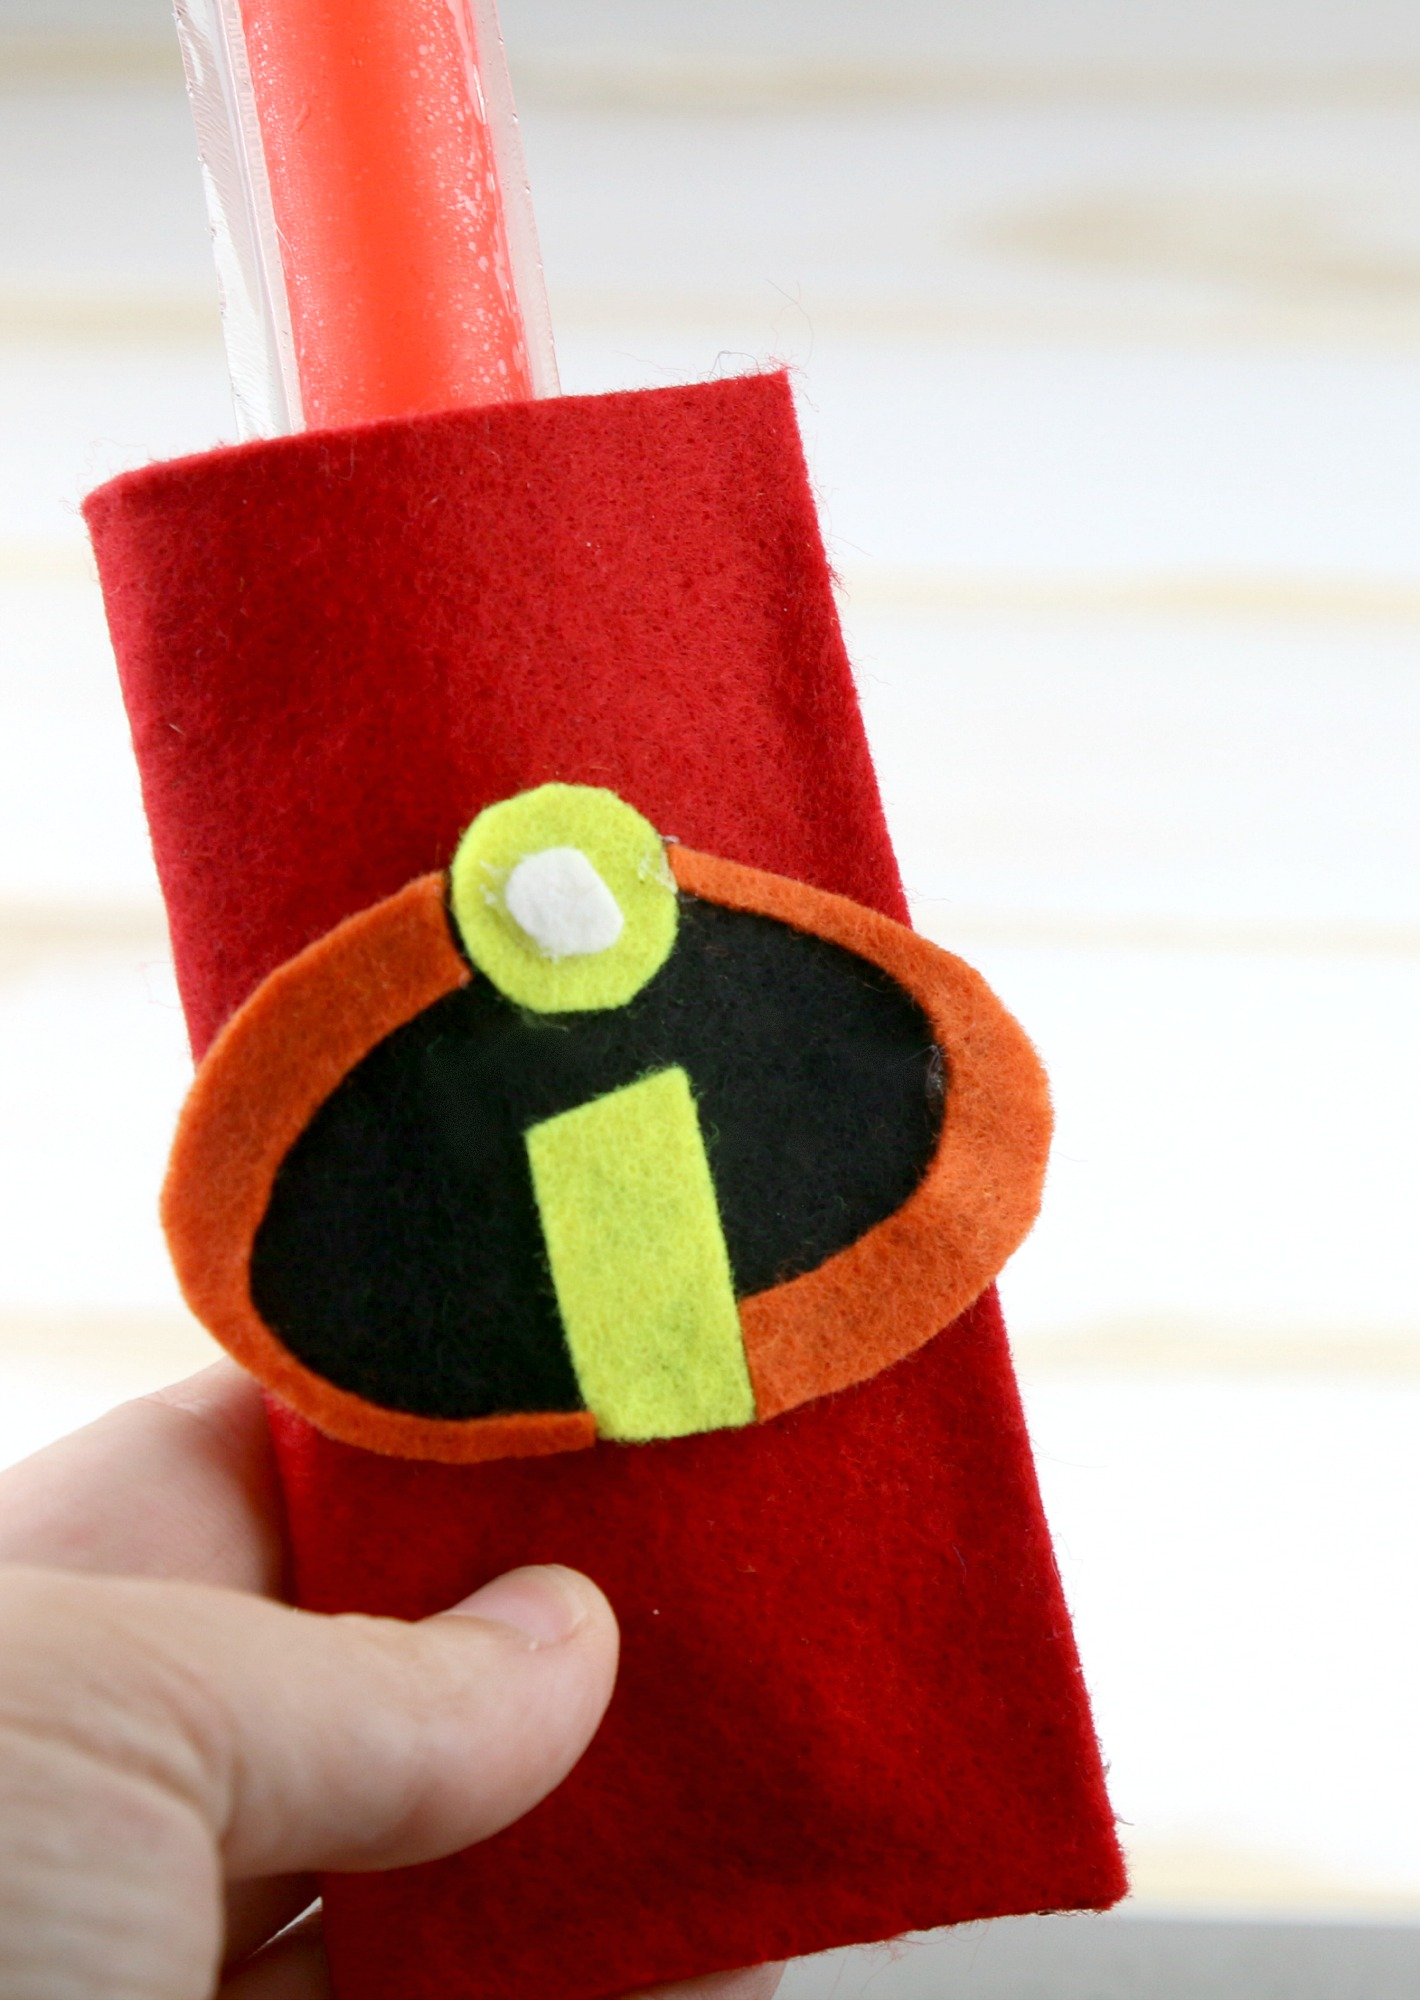 place popsicle in felt holder